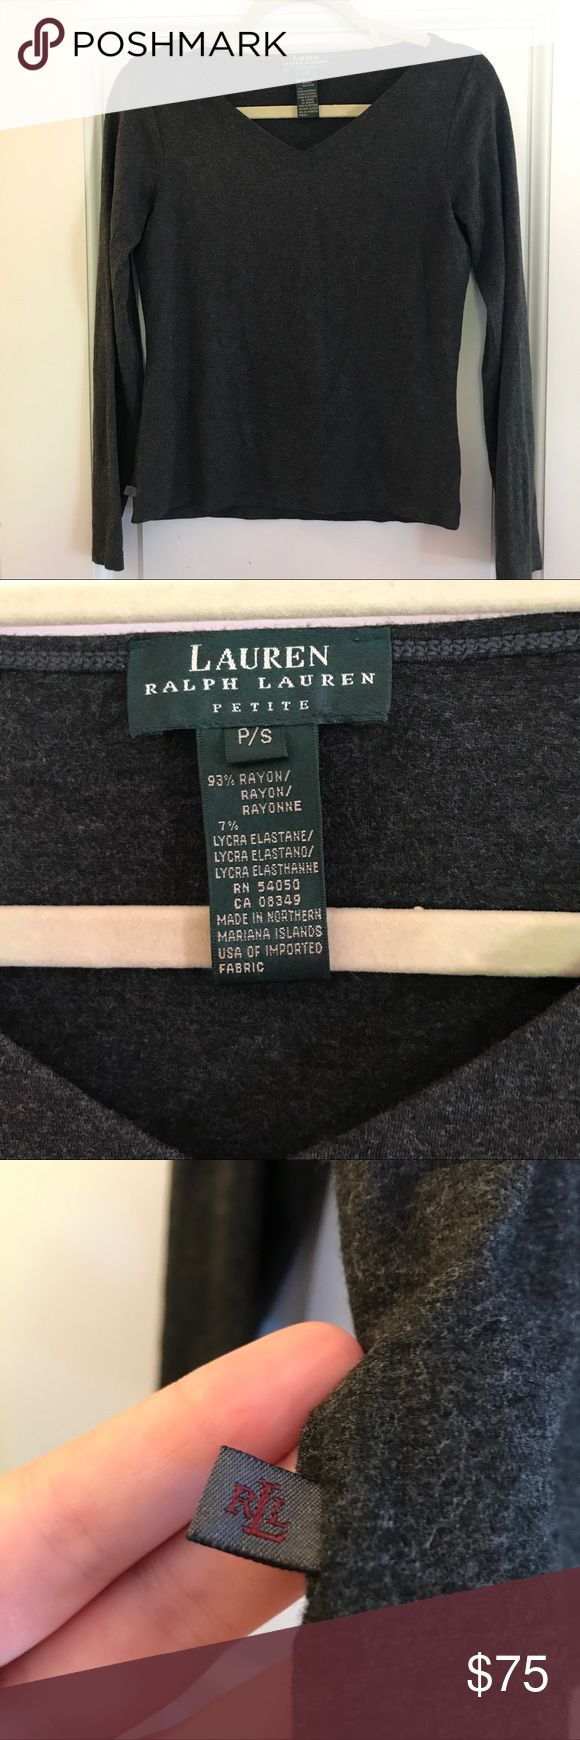 Lauren by Ralph Lauren Small Petite Sweater This item has been worn, but it has been taken care of amazingly. It is from the line Lauren by Ralph Lauren. Prices from this collection range from $300 and up. This sweater has no signs of wear, it is basically brand new. Size Small petite. Lauren Ralph Lauren Sweaters Crew & Scoop Necks